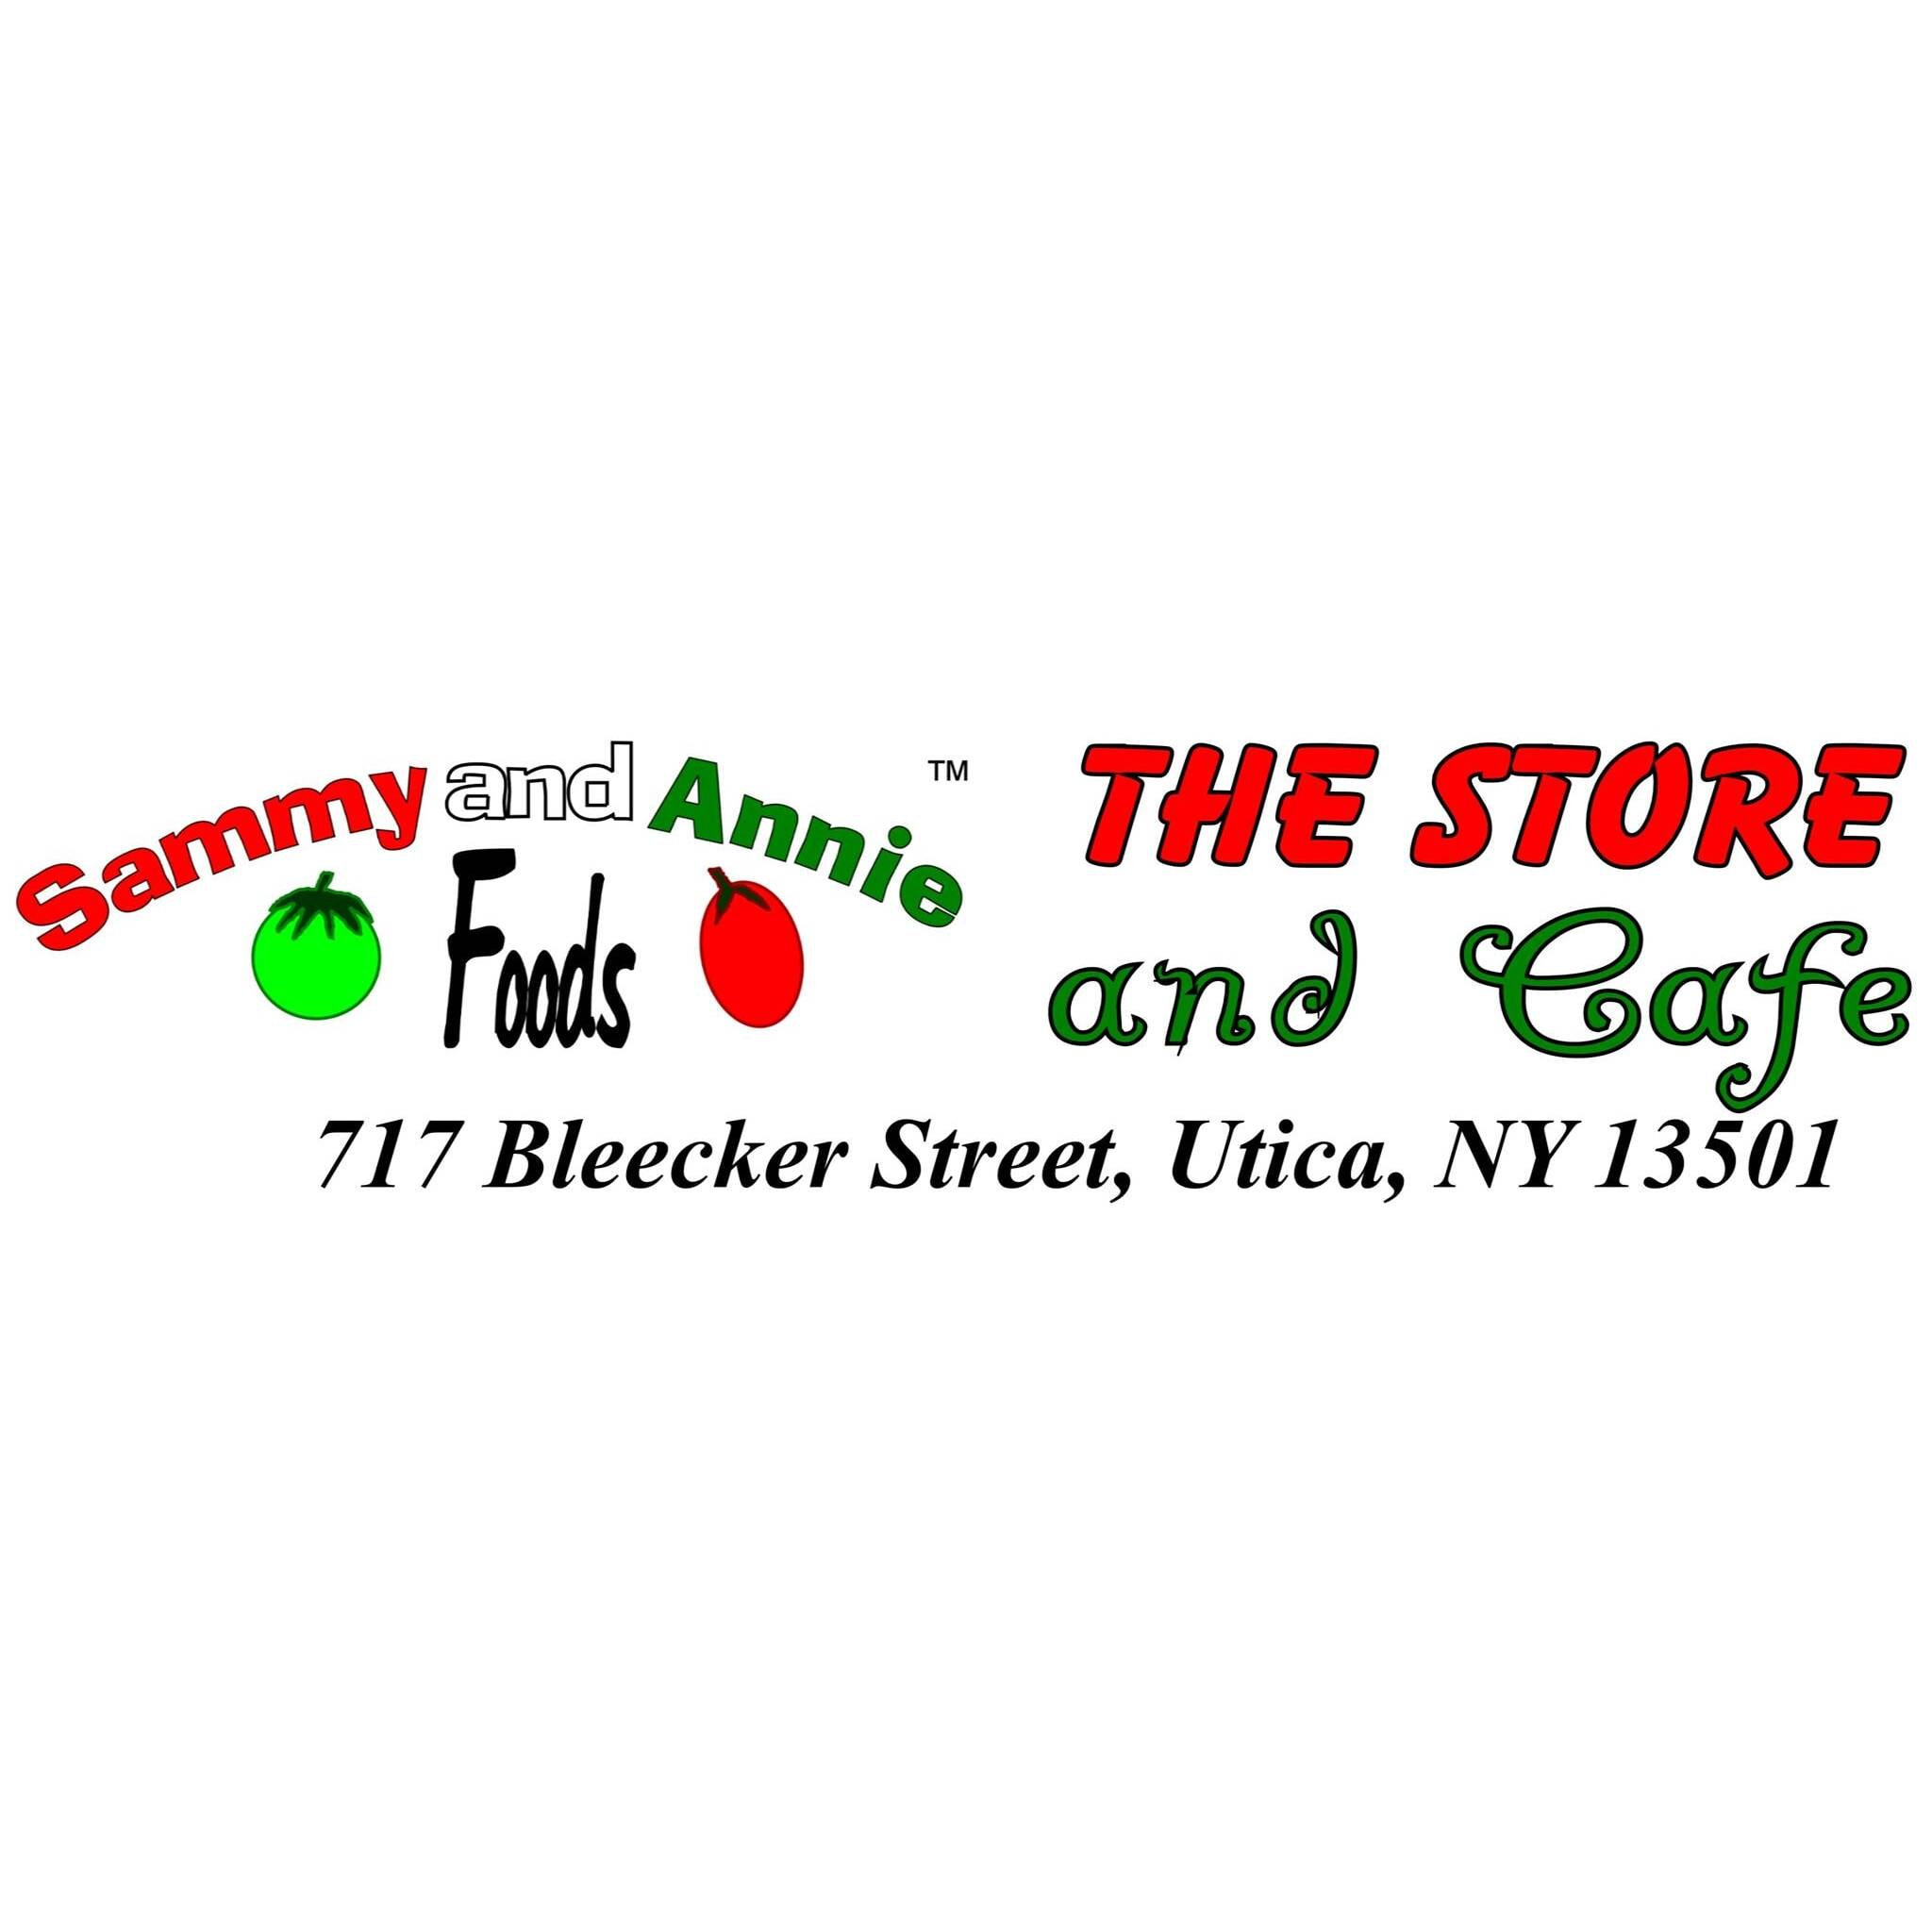 Sammy and Annie Foods